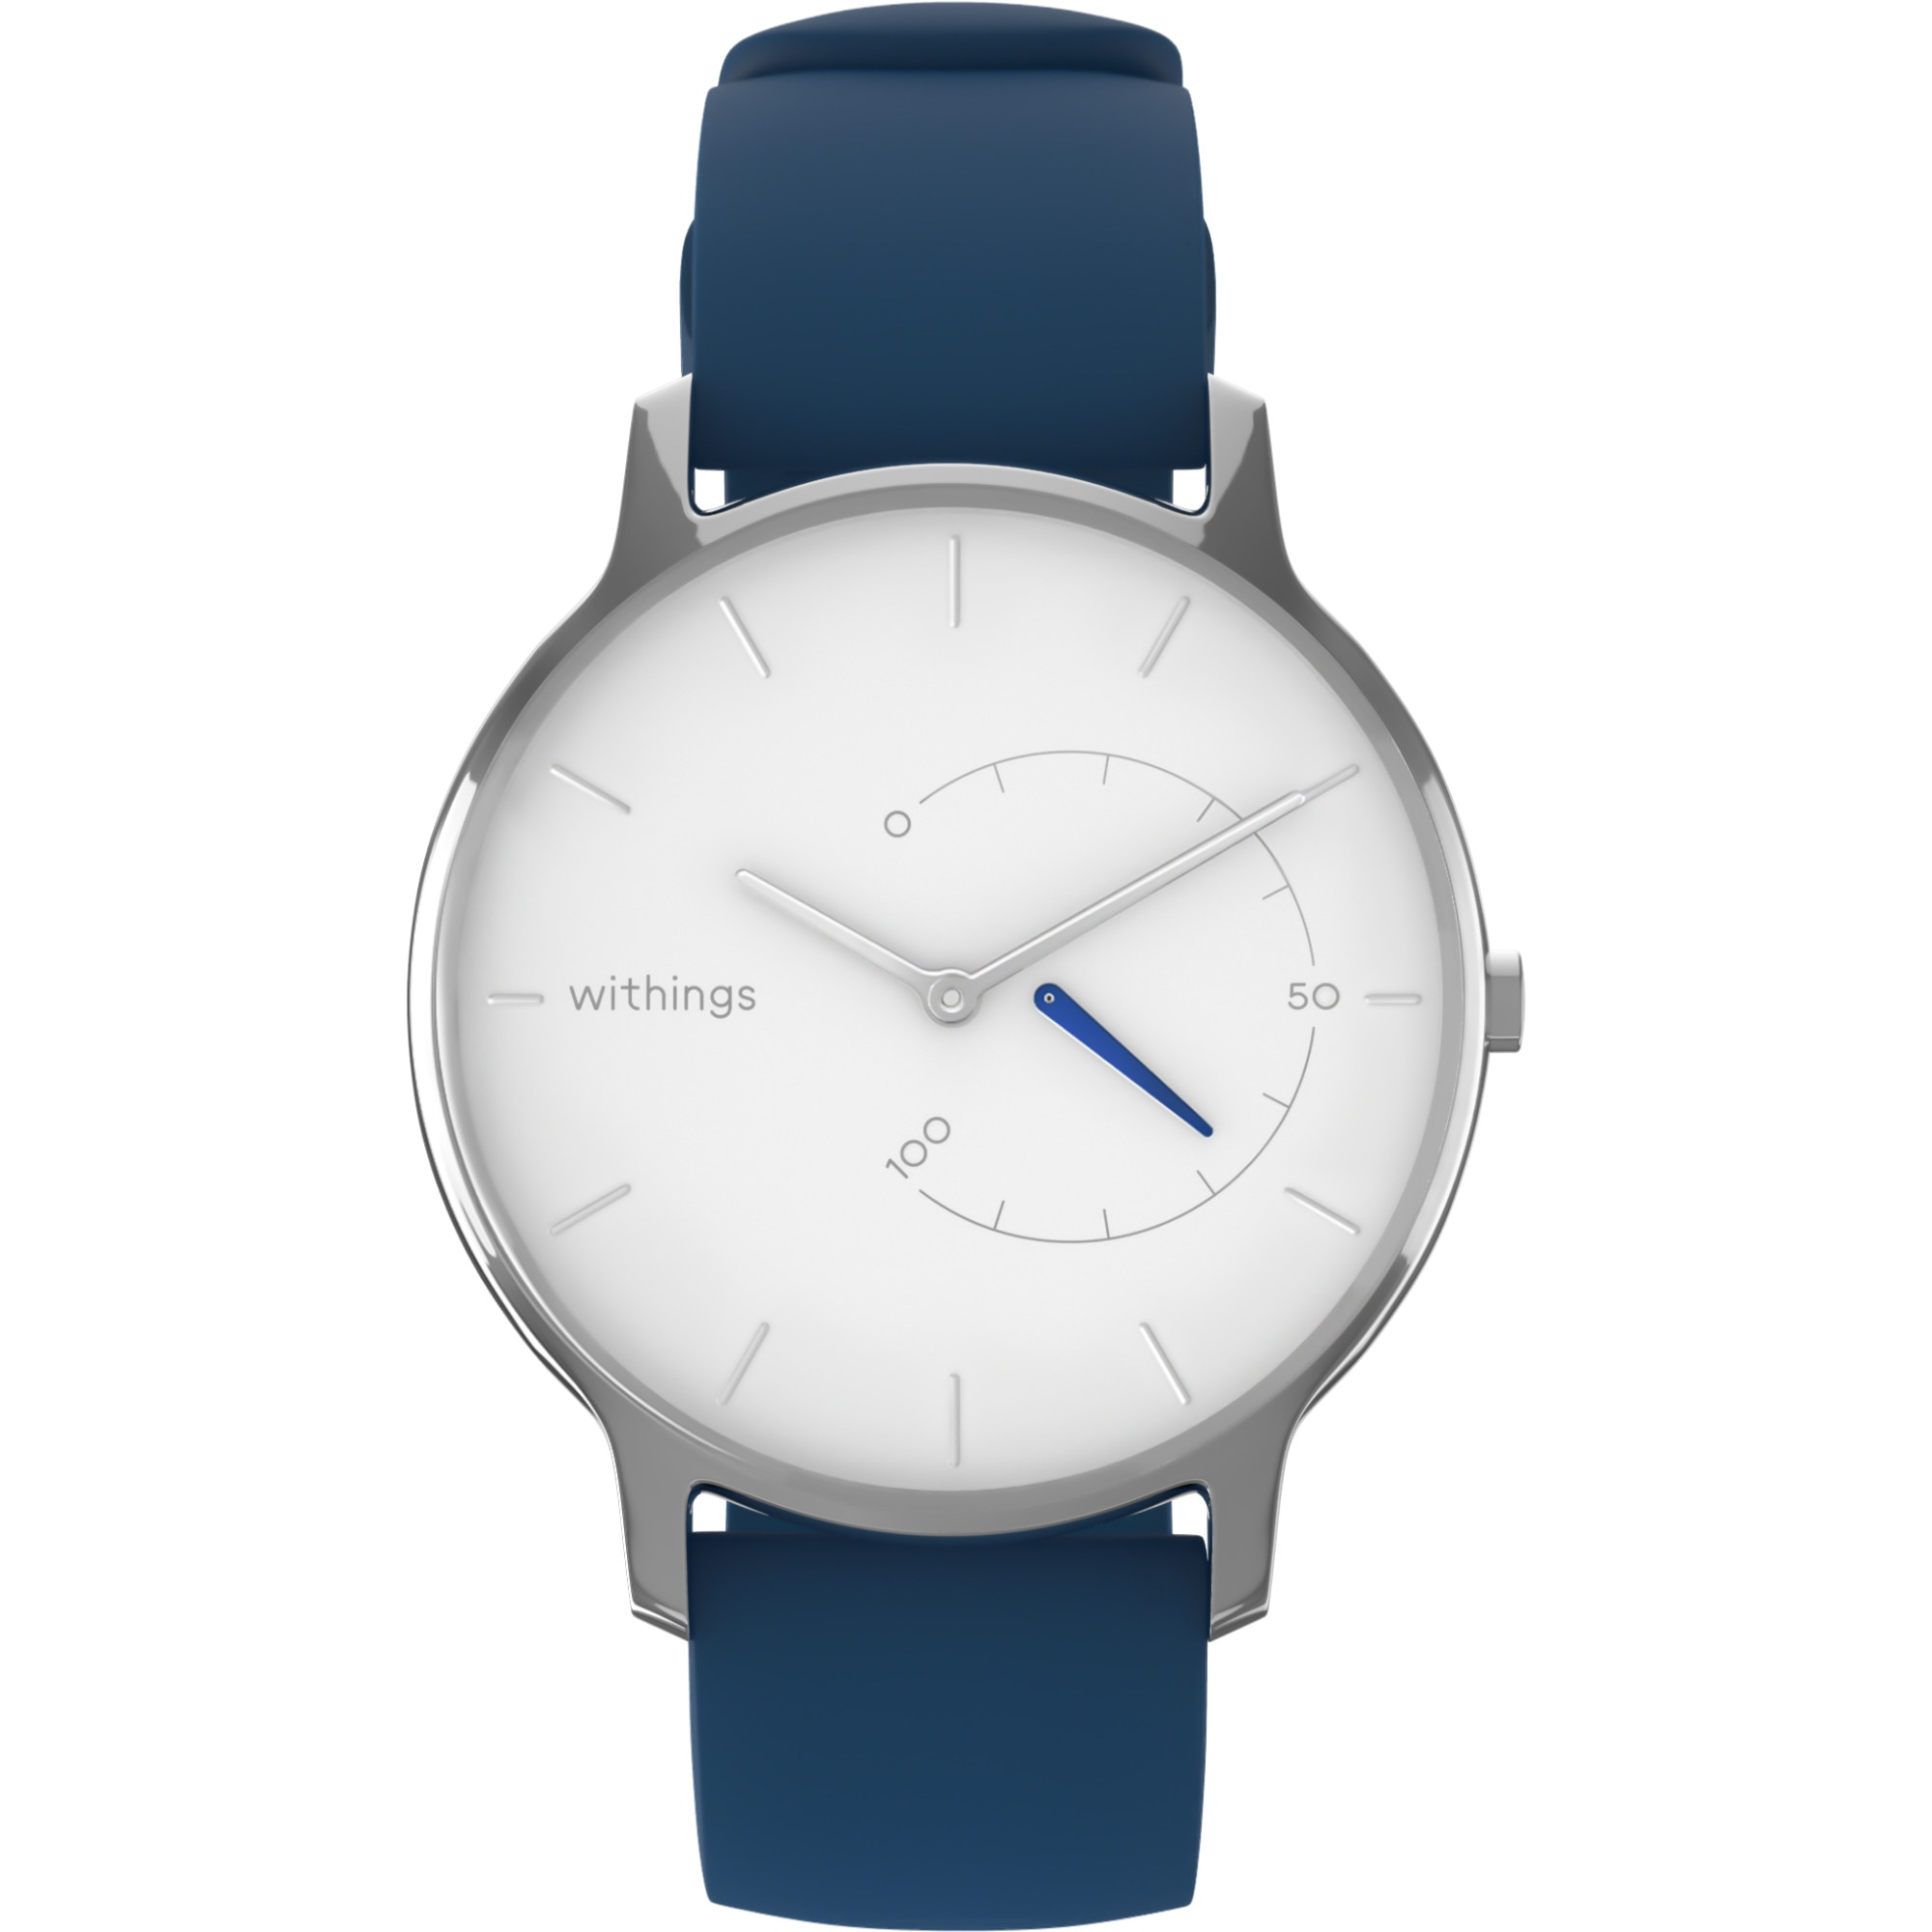 Fotografie Ceas smartwatch Withings Move Timeless Chic, Argintiu/Albastru